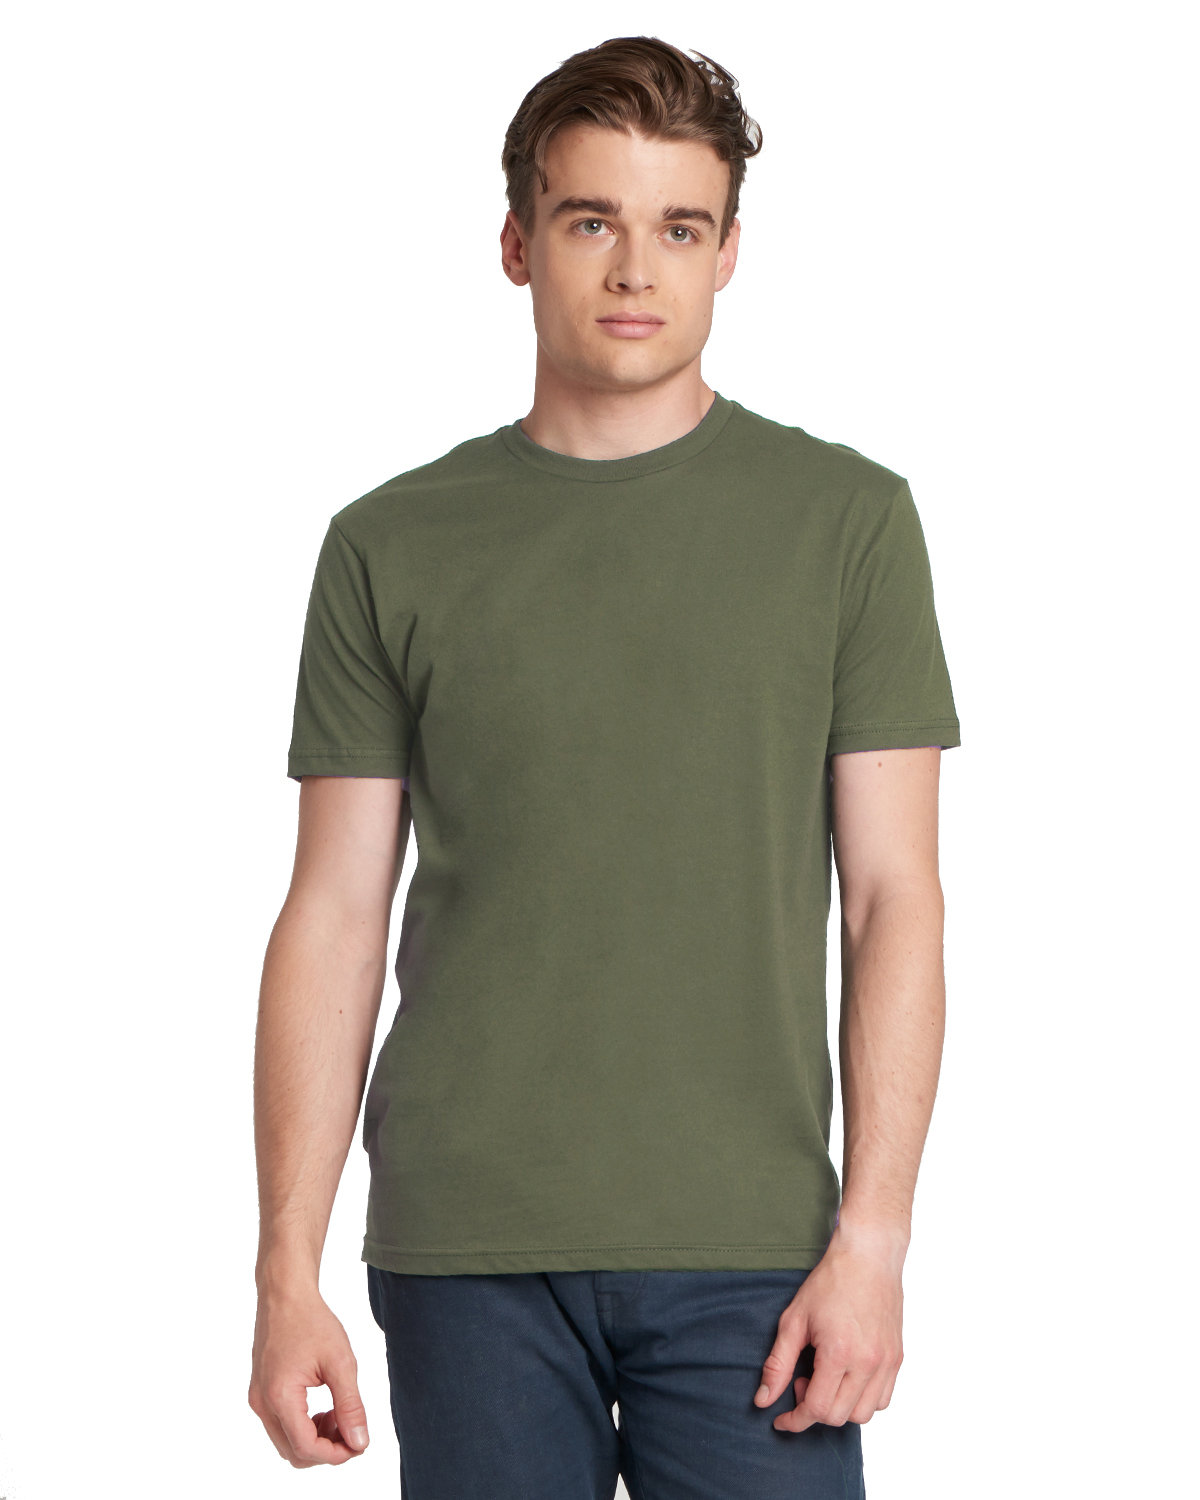 Next Level Men's Made in USA Cotton Crew MILITARY GREEN